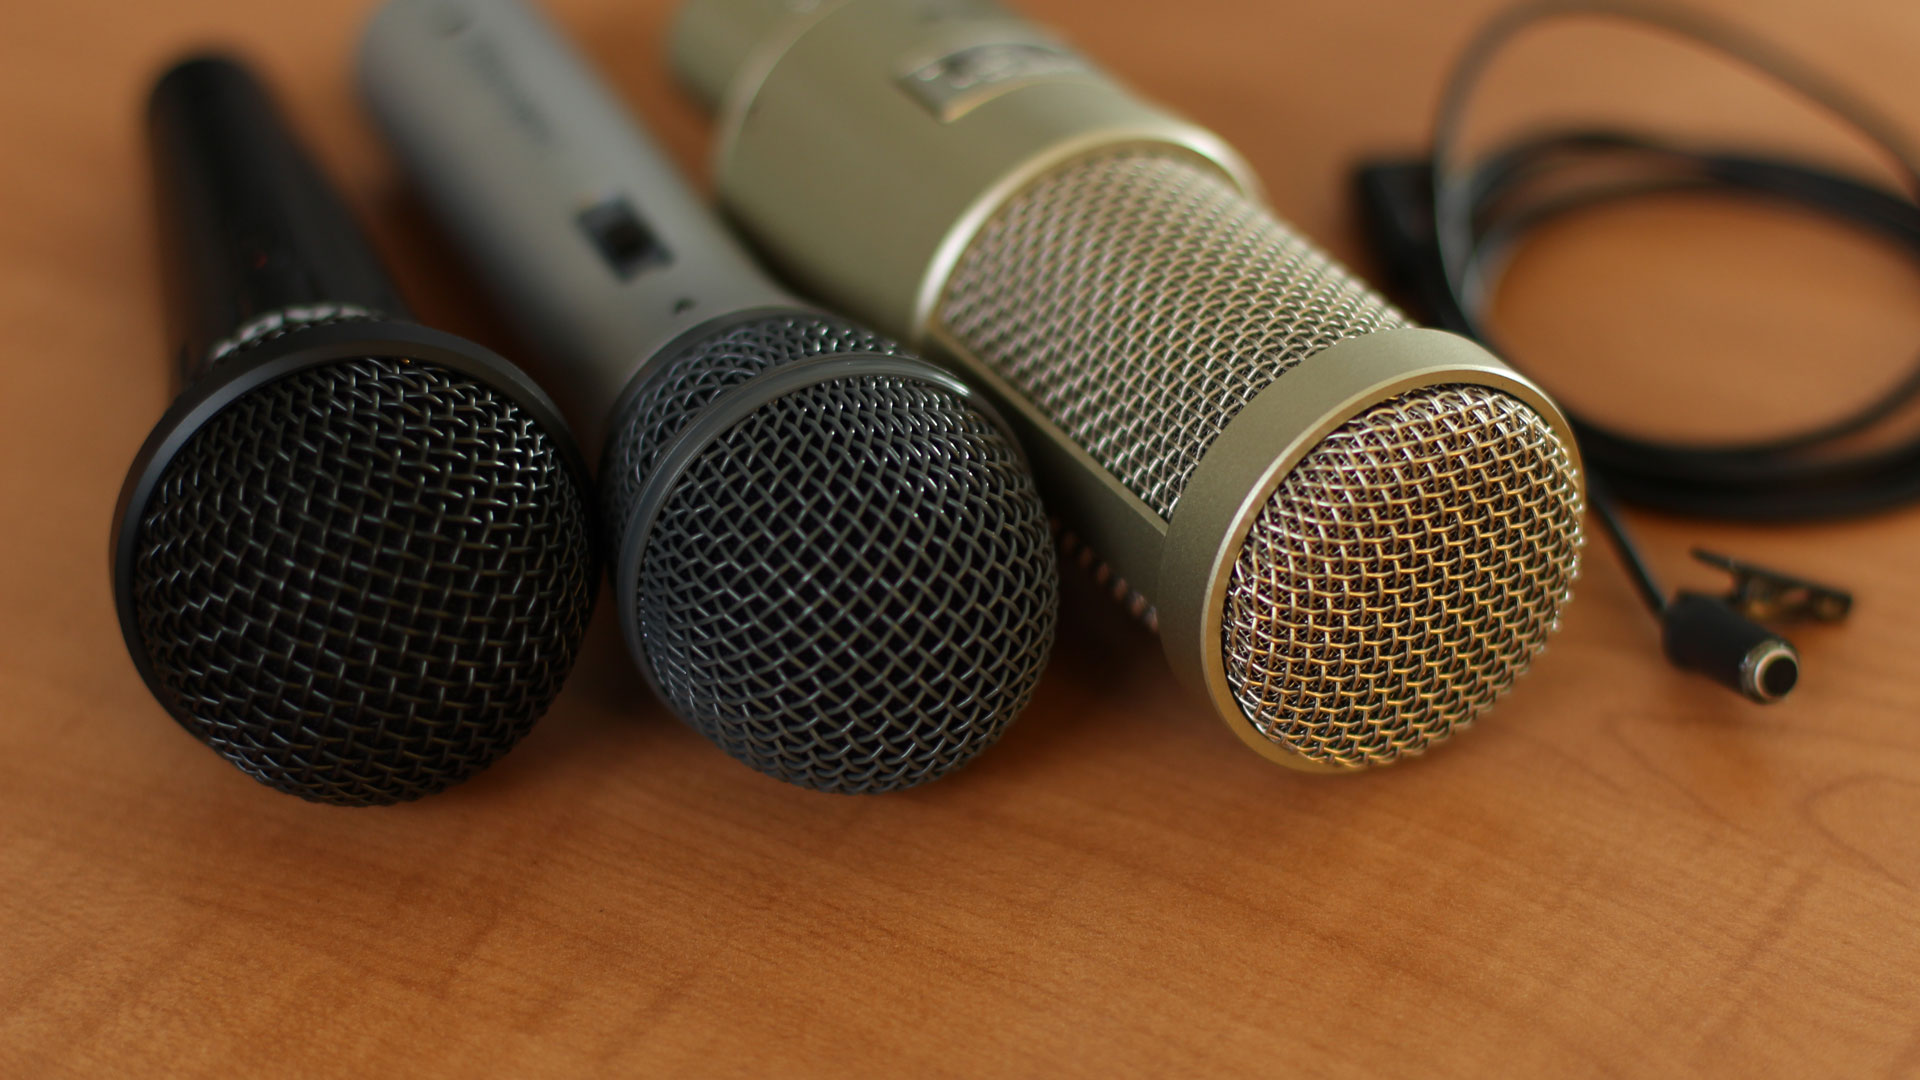 Podcast mic comparisons for audio and video